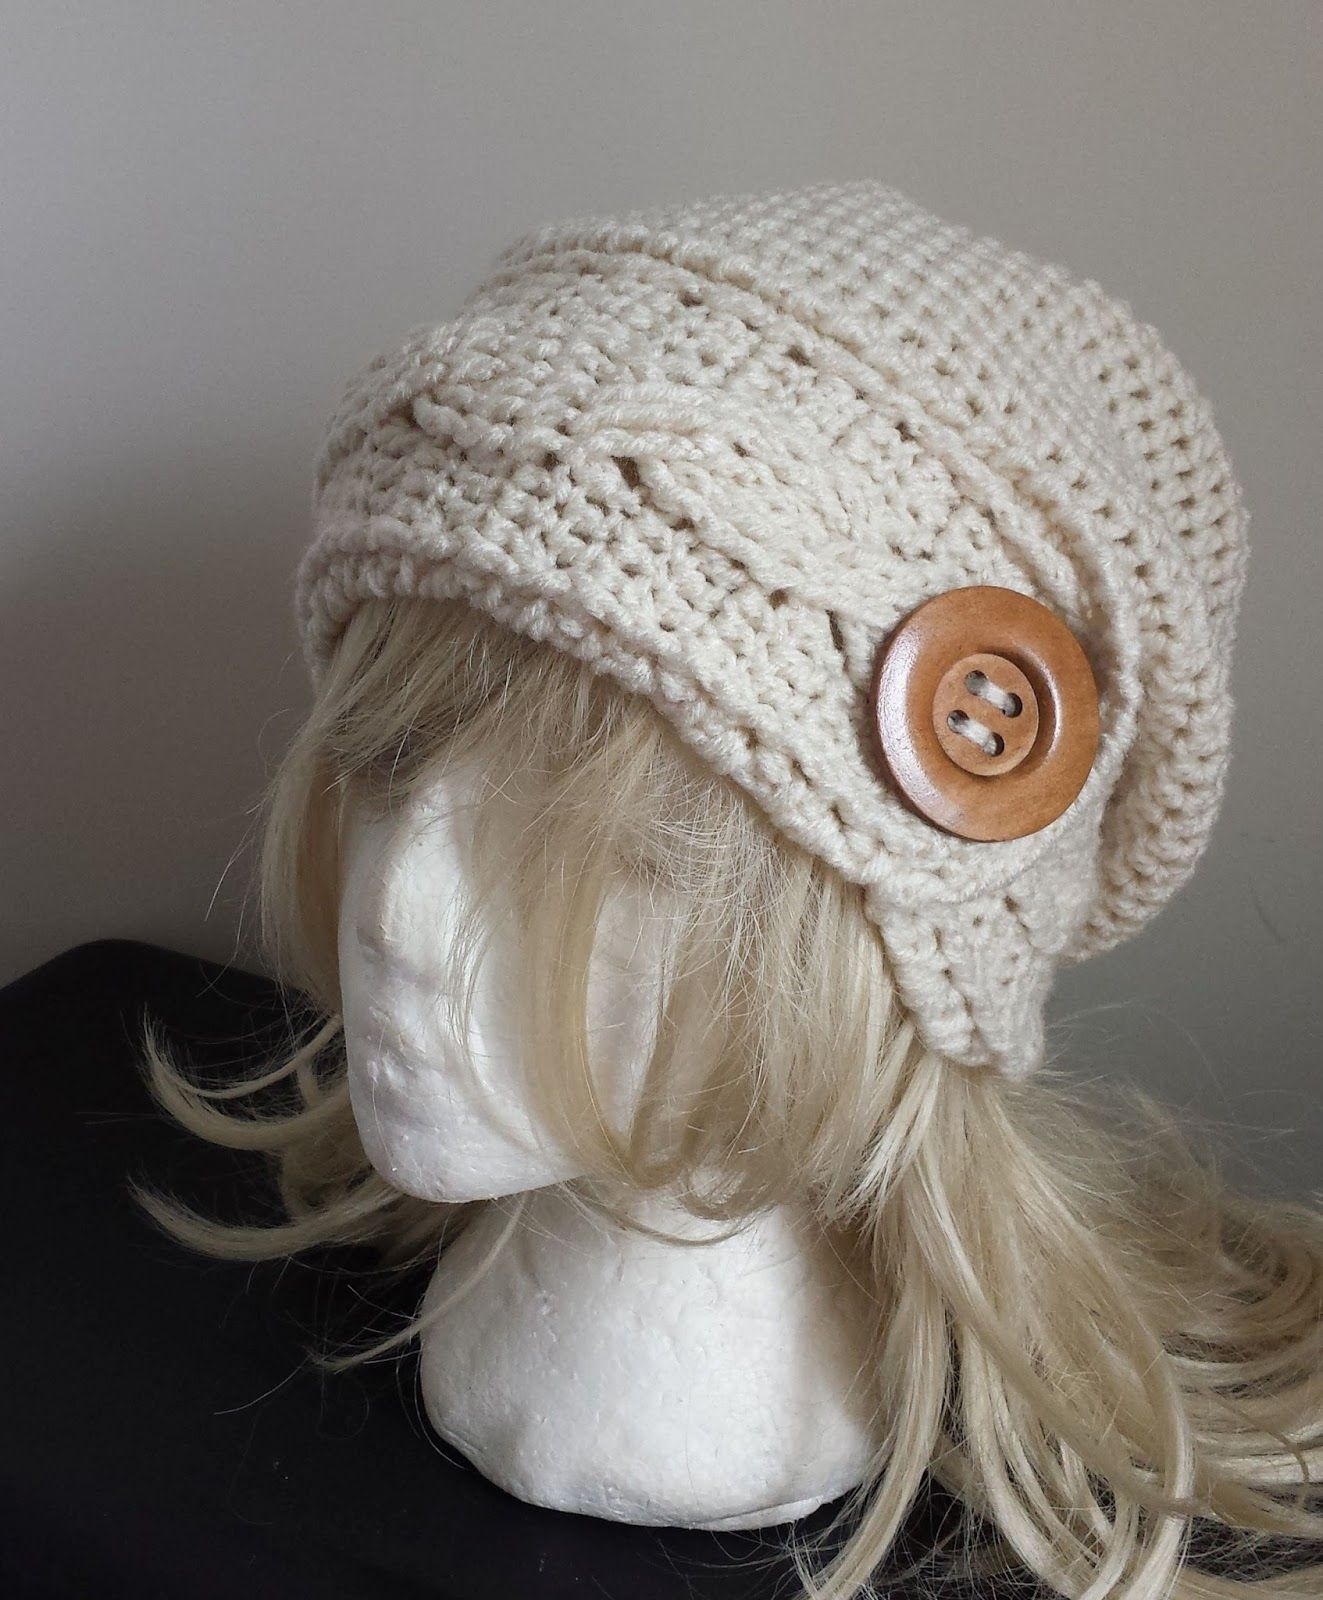 Here it is, my version of the crochet cabled headband slouchy hat ...